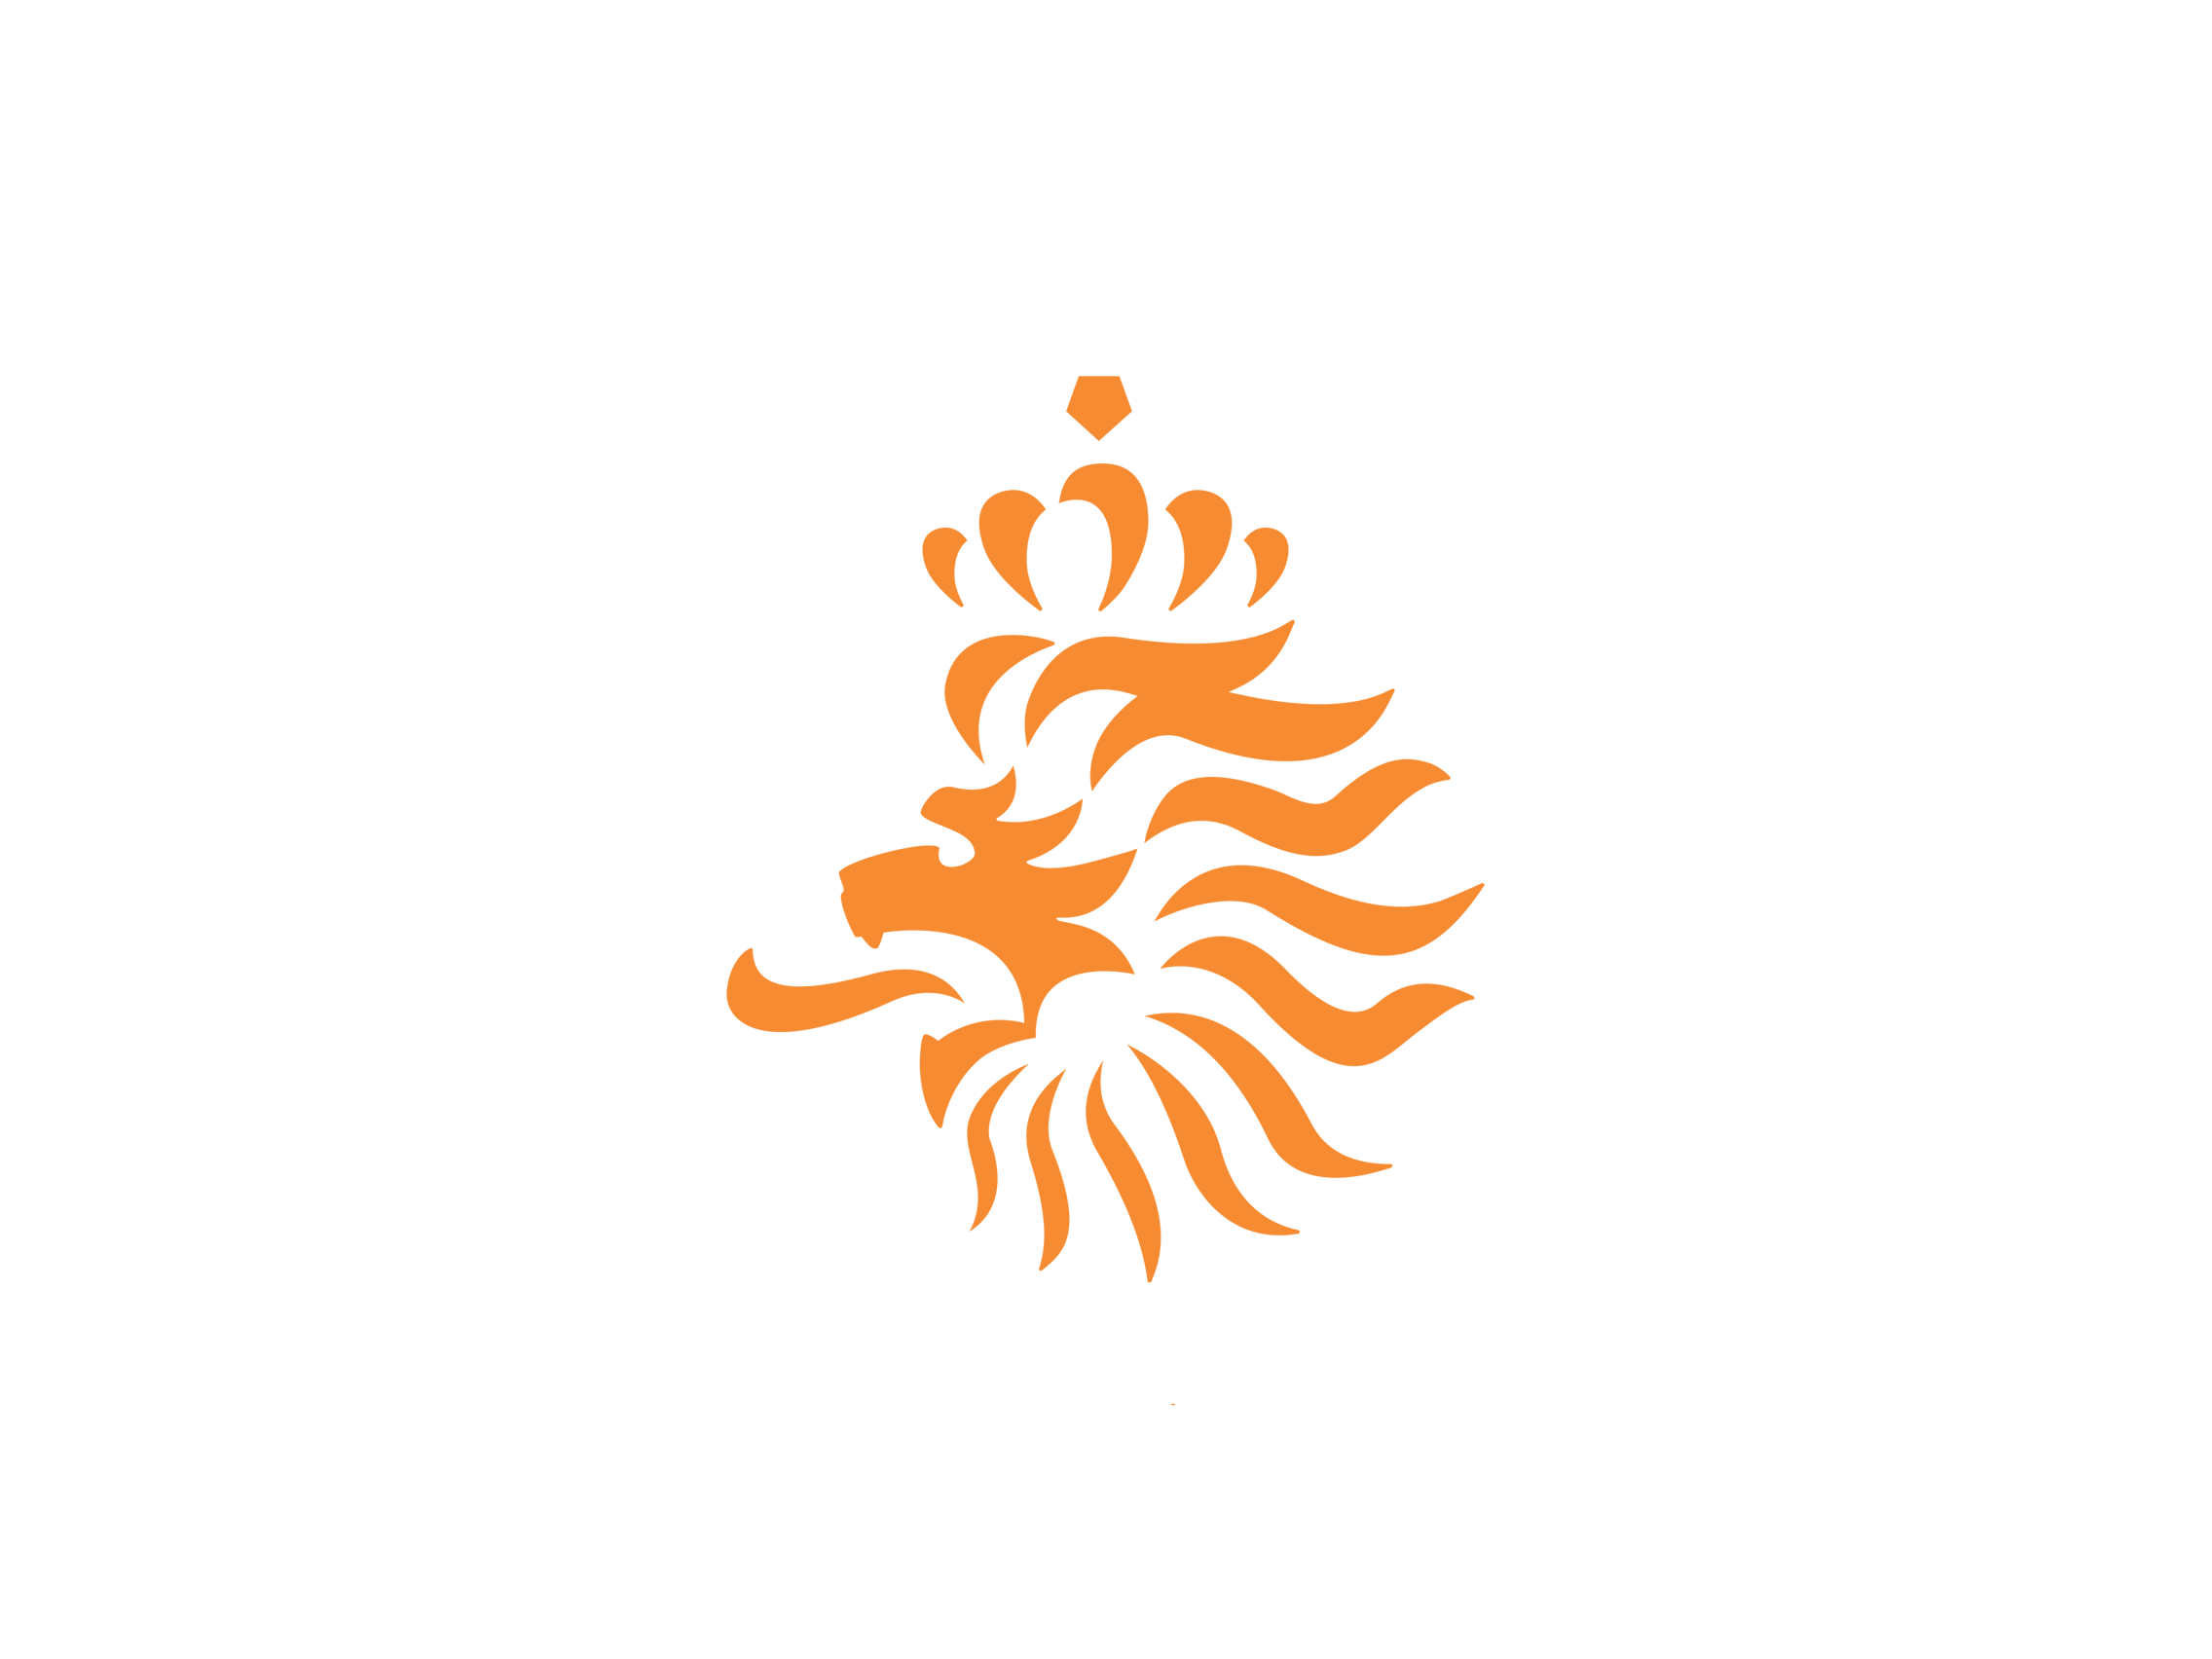 Knvb Holland